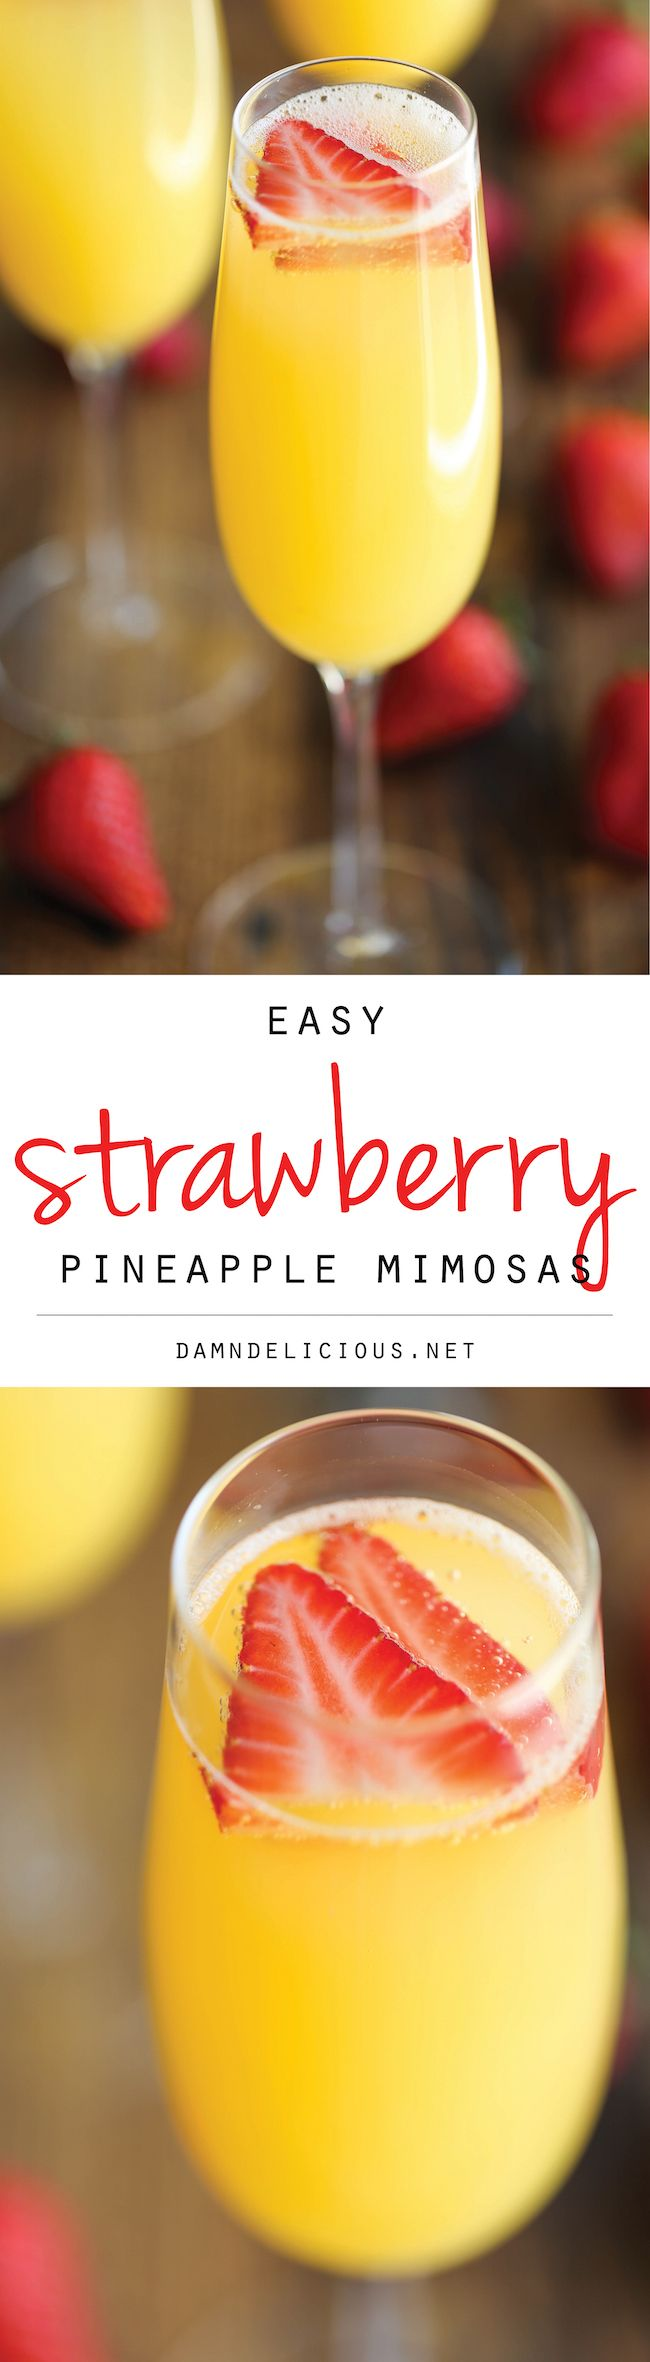 Strawberry Pineapple Mimosas – The easiest, quickest, and best 4-ingredient mimosa ever. And all you need is just 5 min to whip